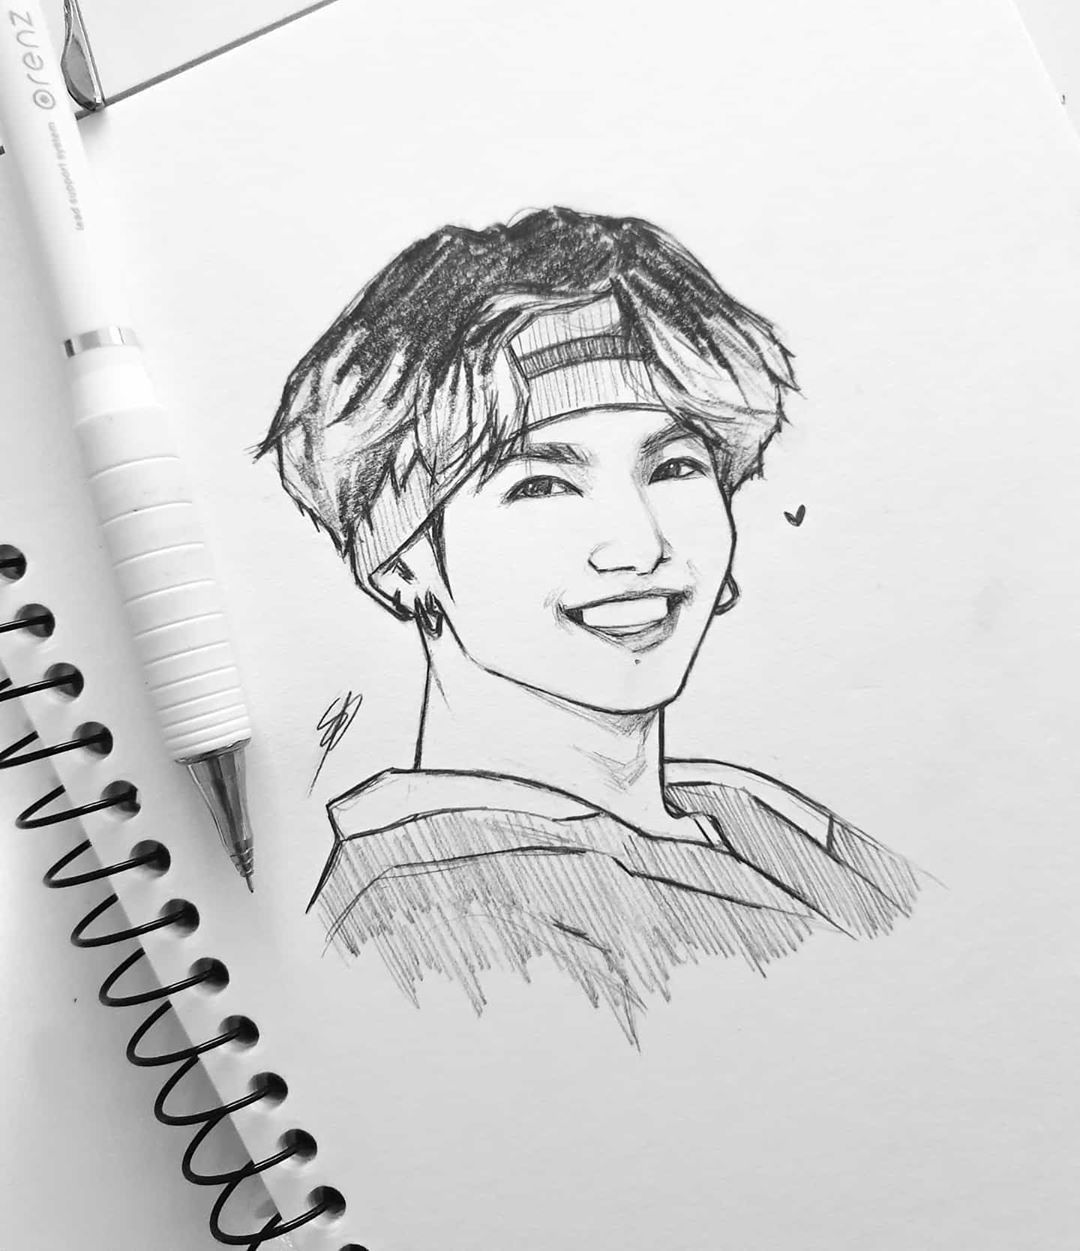 """Photo of • Nikki • on Instagram: """"I ran out of HB lead so I sketched this with 2B and it was so smudgey 😅 #bts #btsfanart #fanart #Jungkook #art #drawing #sketch #kpop…"""""""